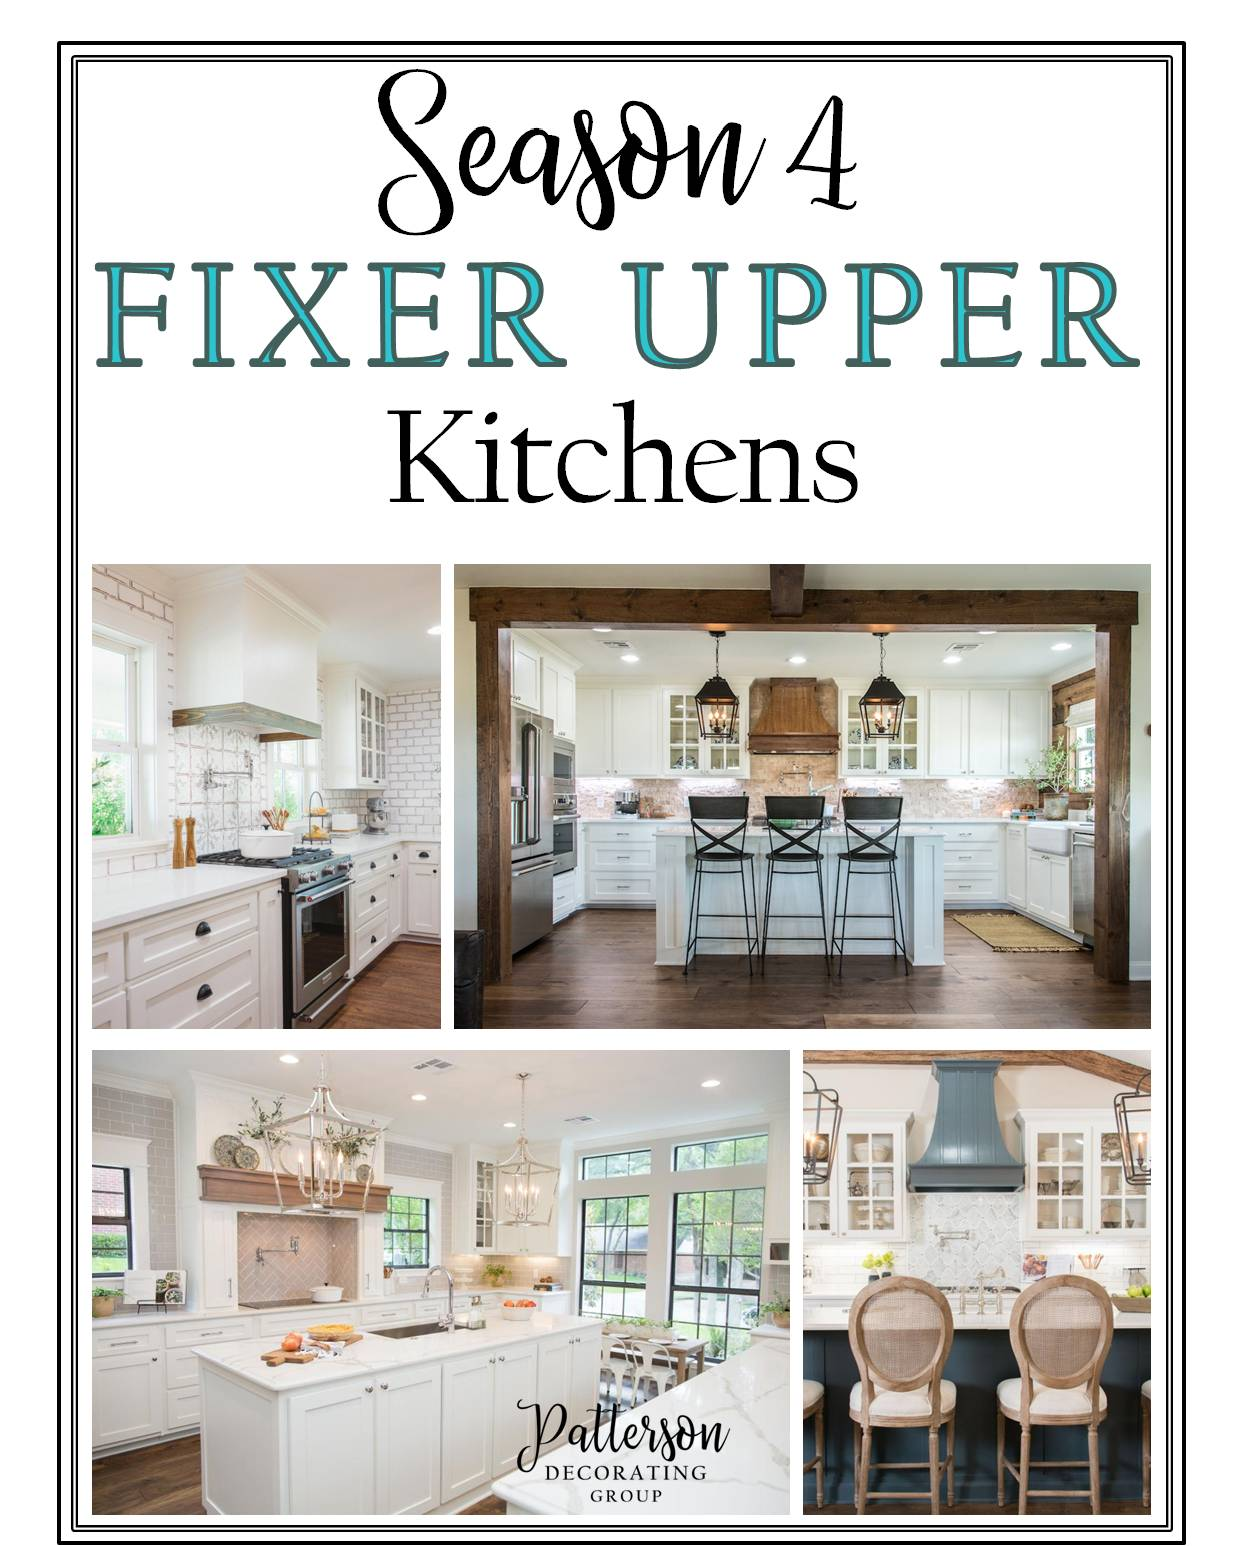 fixer upper kitchens season 4 patterson decorating group drapes and design blog. Black Bedroom Furniture Sets. Home Design Ideas